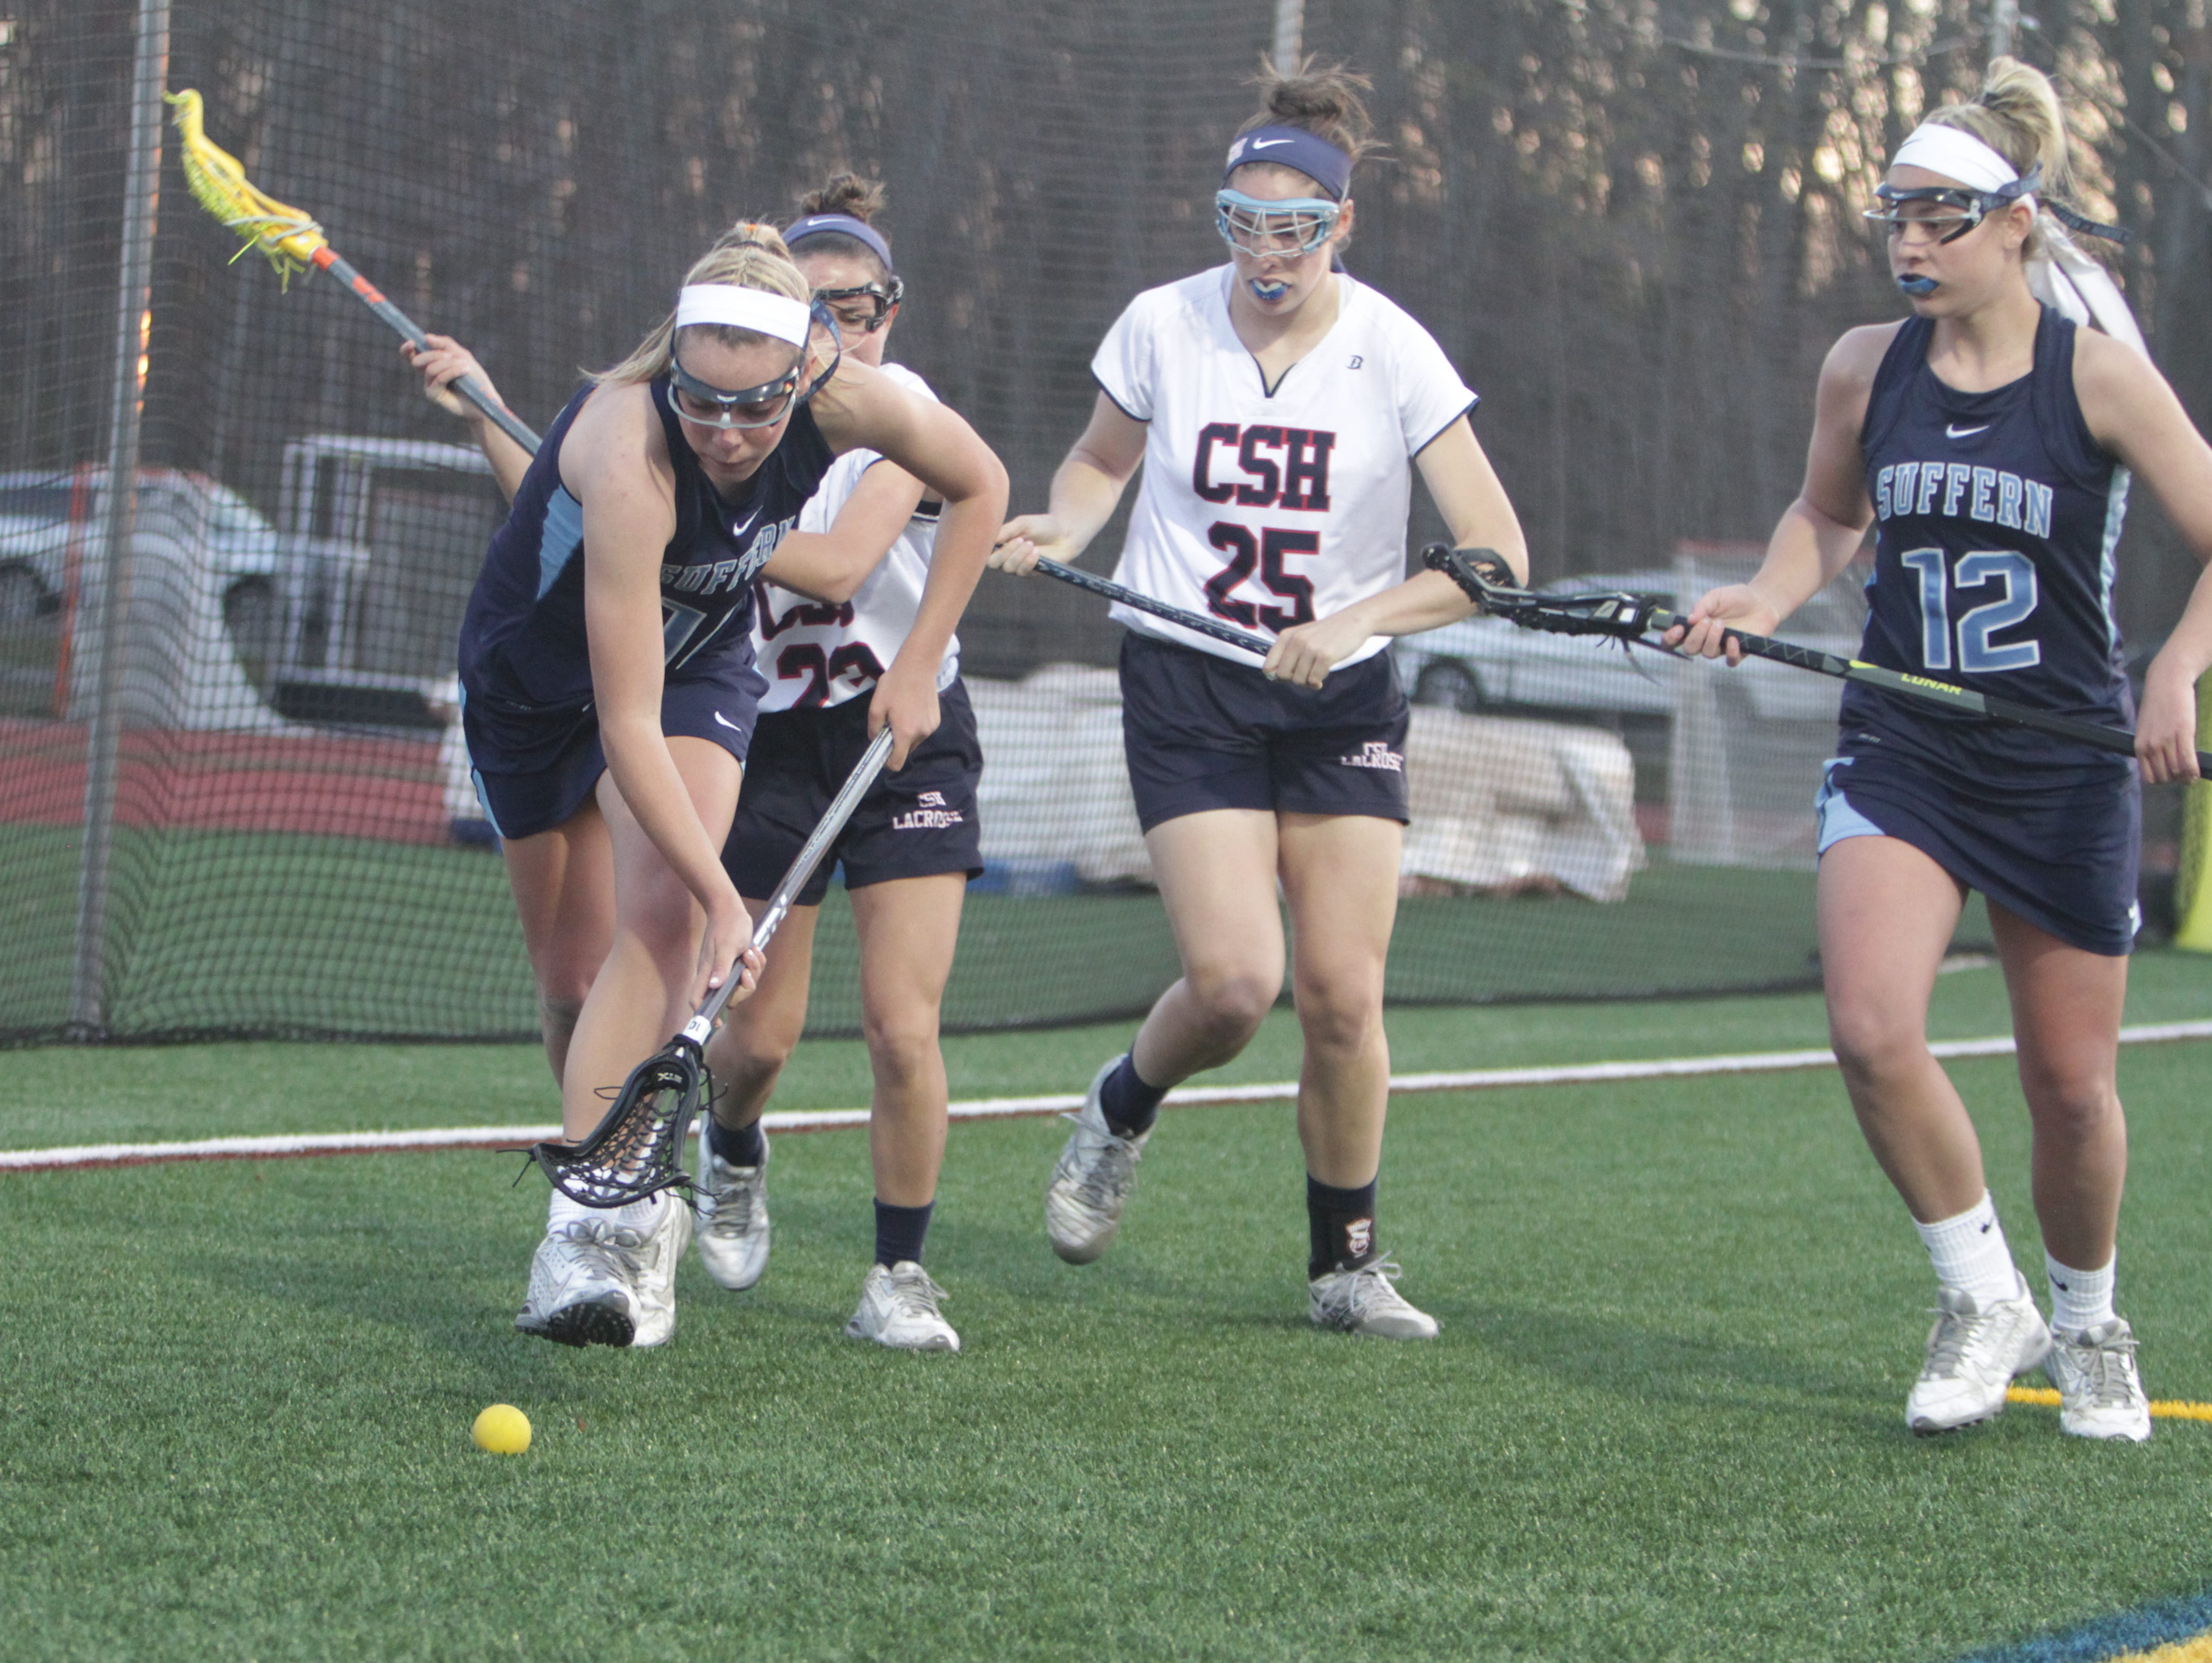 Suffern's Reilly Drab goes after a ground ball, with older sister Jordan (12) looking on, during a girls lacrosse game between Suffern and Cold Spring Harbor in the Gains for Brains Lax Showcase at Cold Spring Harbor High School on Saturday, April 16th, 2016. Cold Spring Harbor won 13-11.